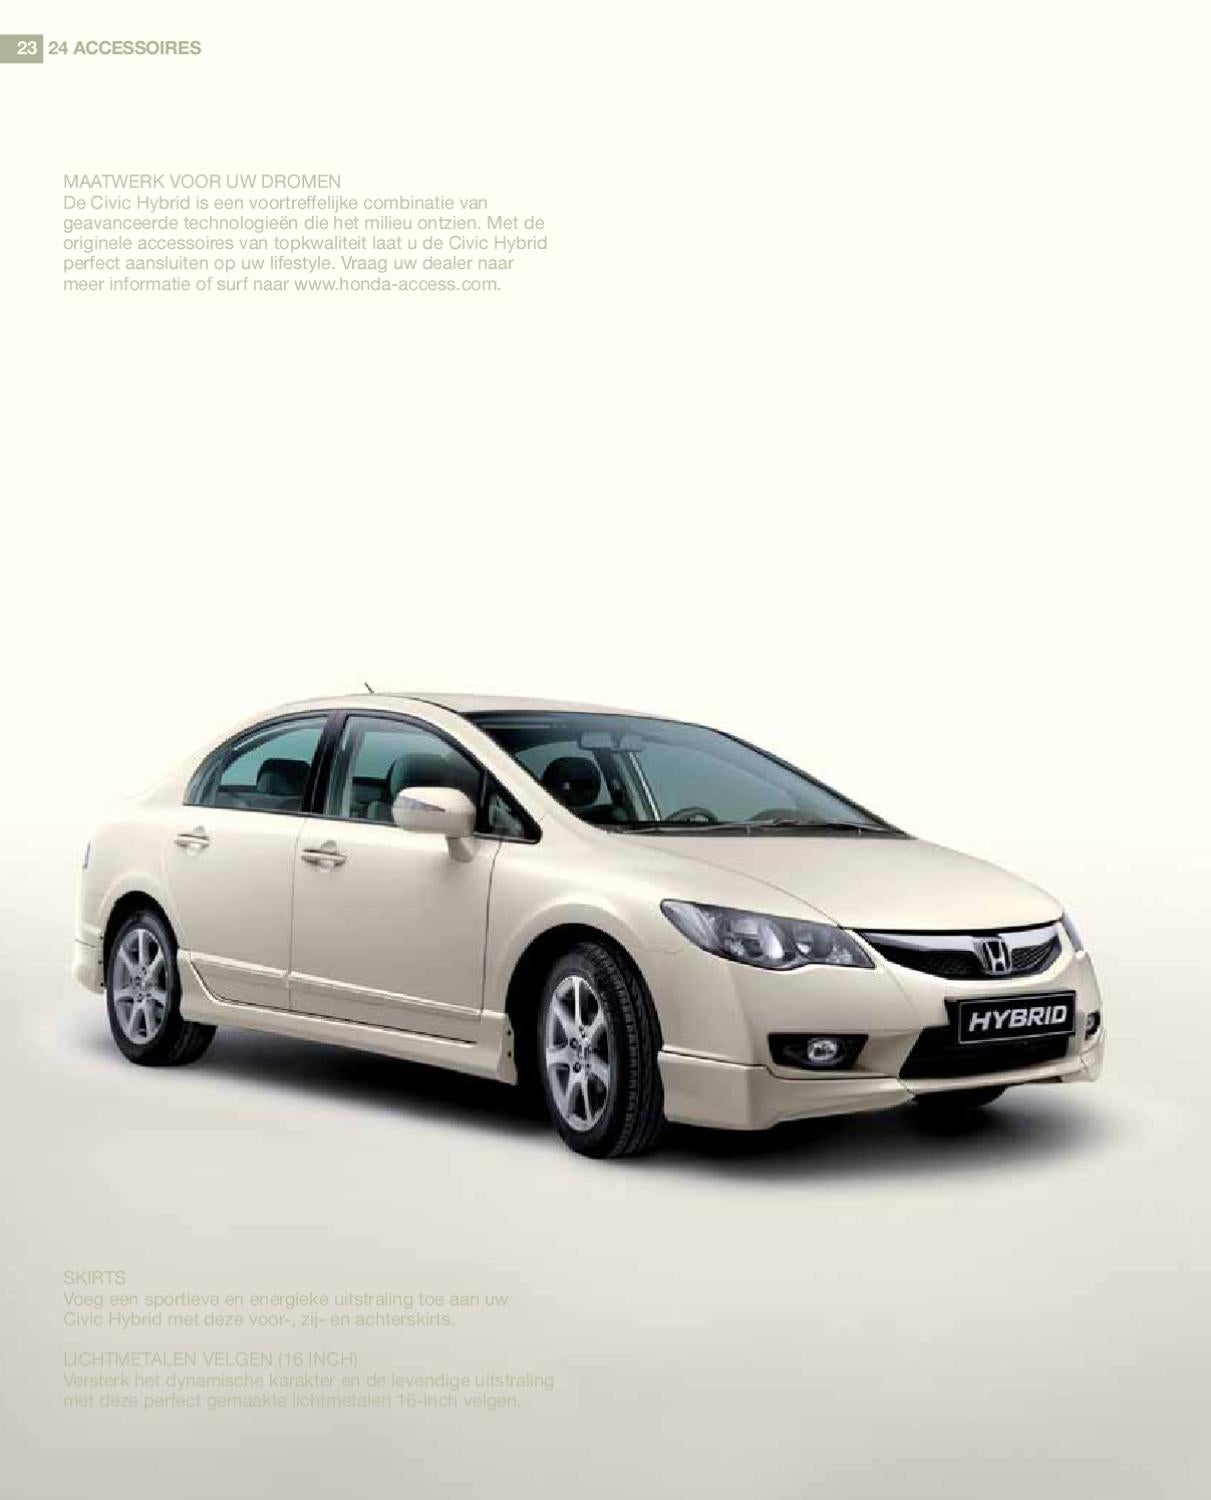 2010 Honda Civic Hybride Brochure By Ted Sluymer Issuu